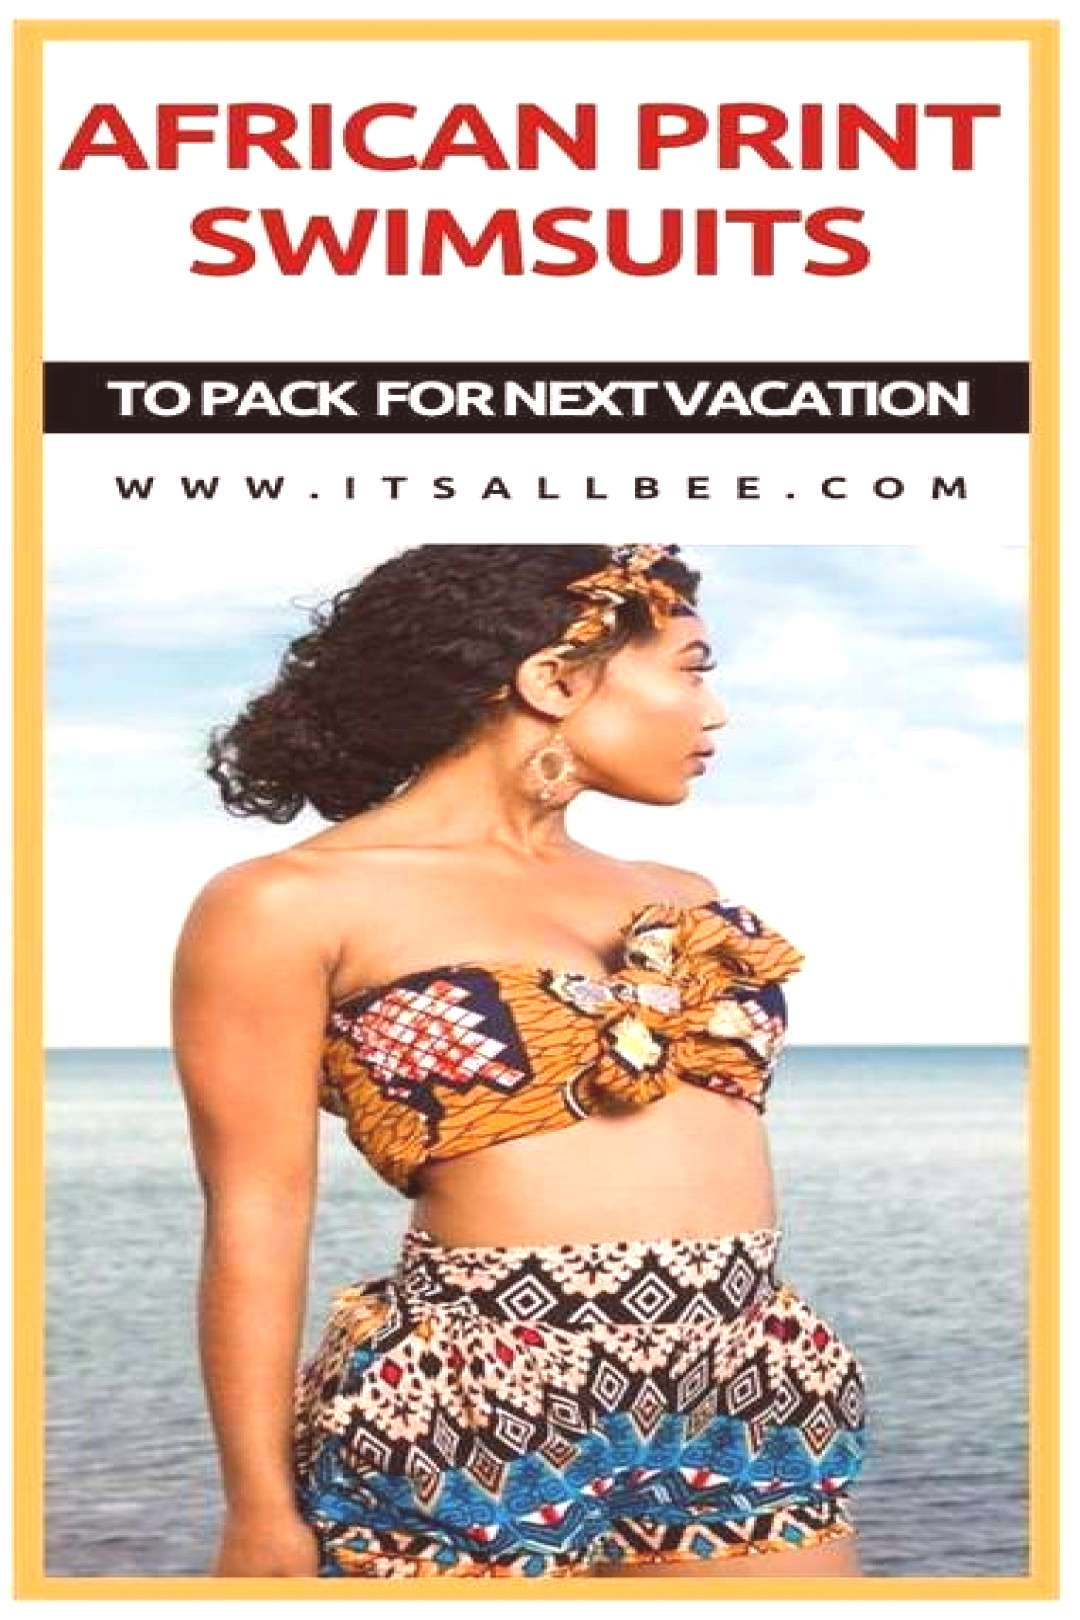 Stunning Kente print swimsuits amp African Print Swimwear For Your Next Beach Vacation | ItsAllBee St